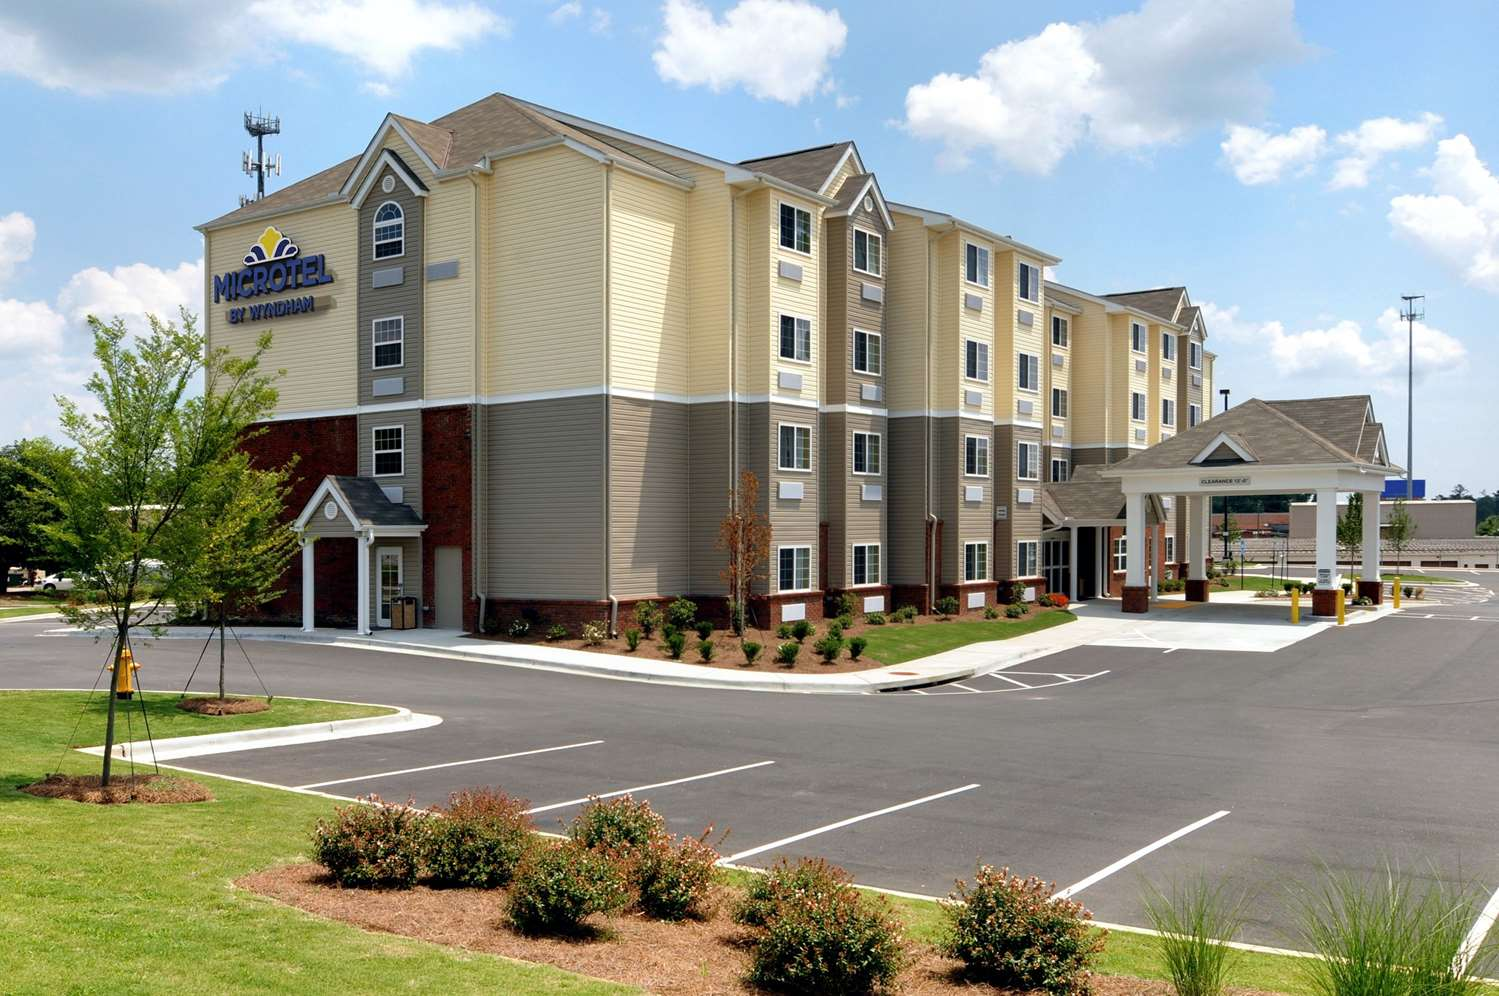 Exterior view - Microtel Inn & Suites by Wyndham Fort Benning Columbus